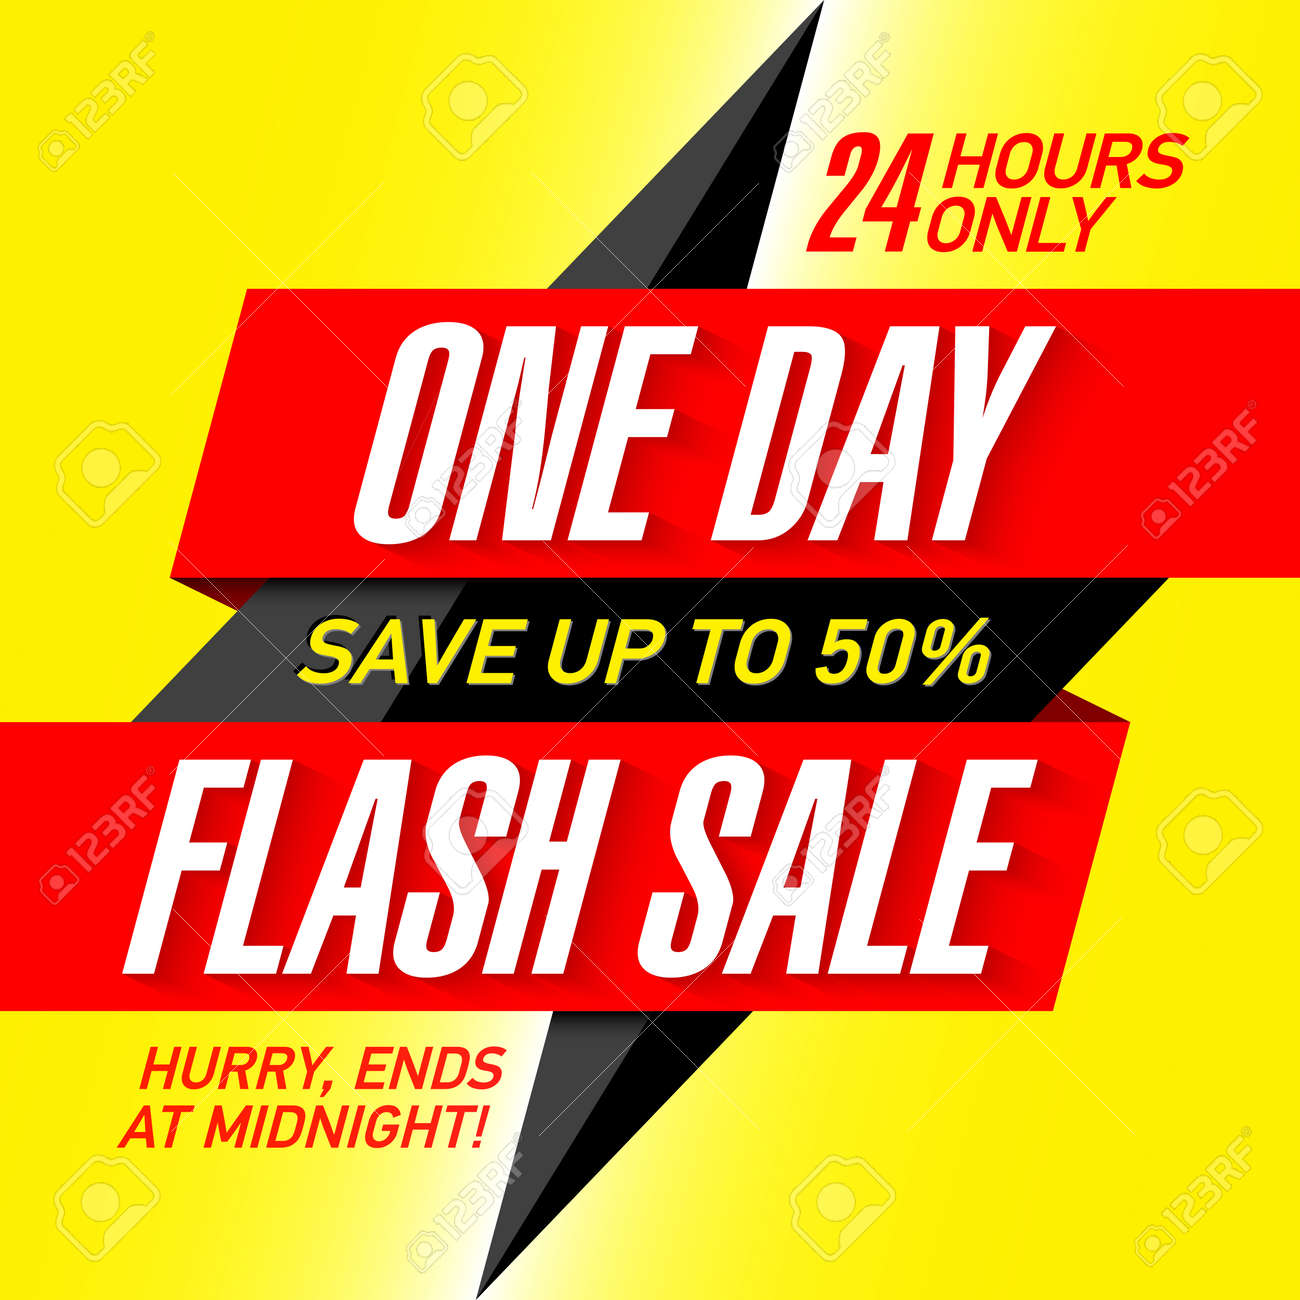 One Day Flash Sale Banner Design Template Royalty Free Cliparts ...